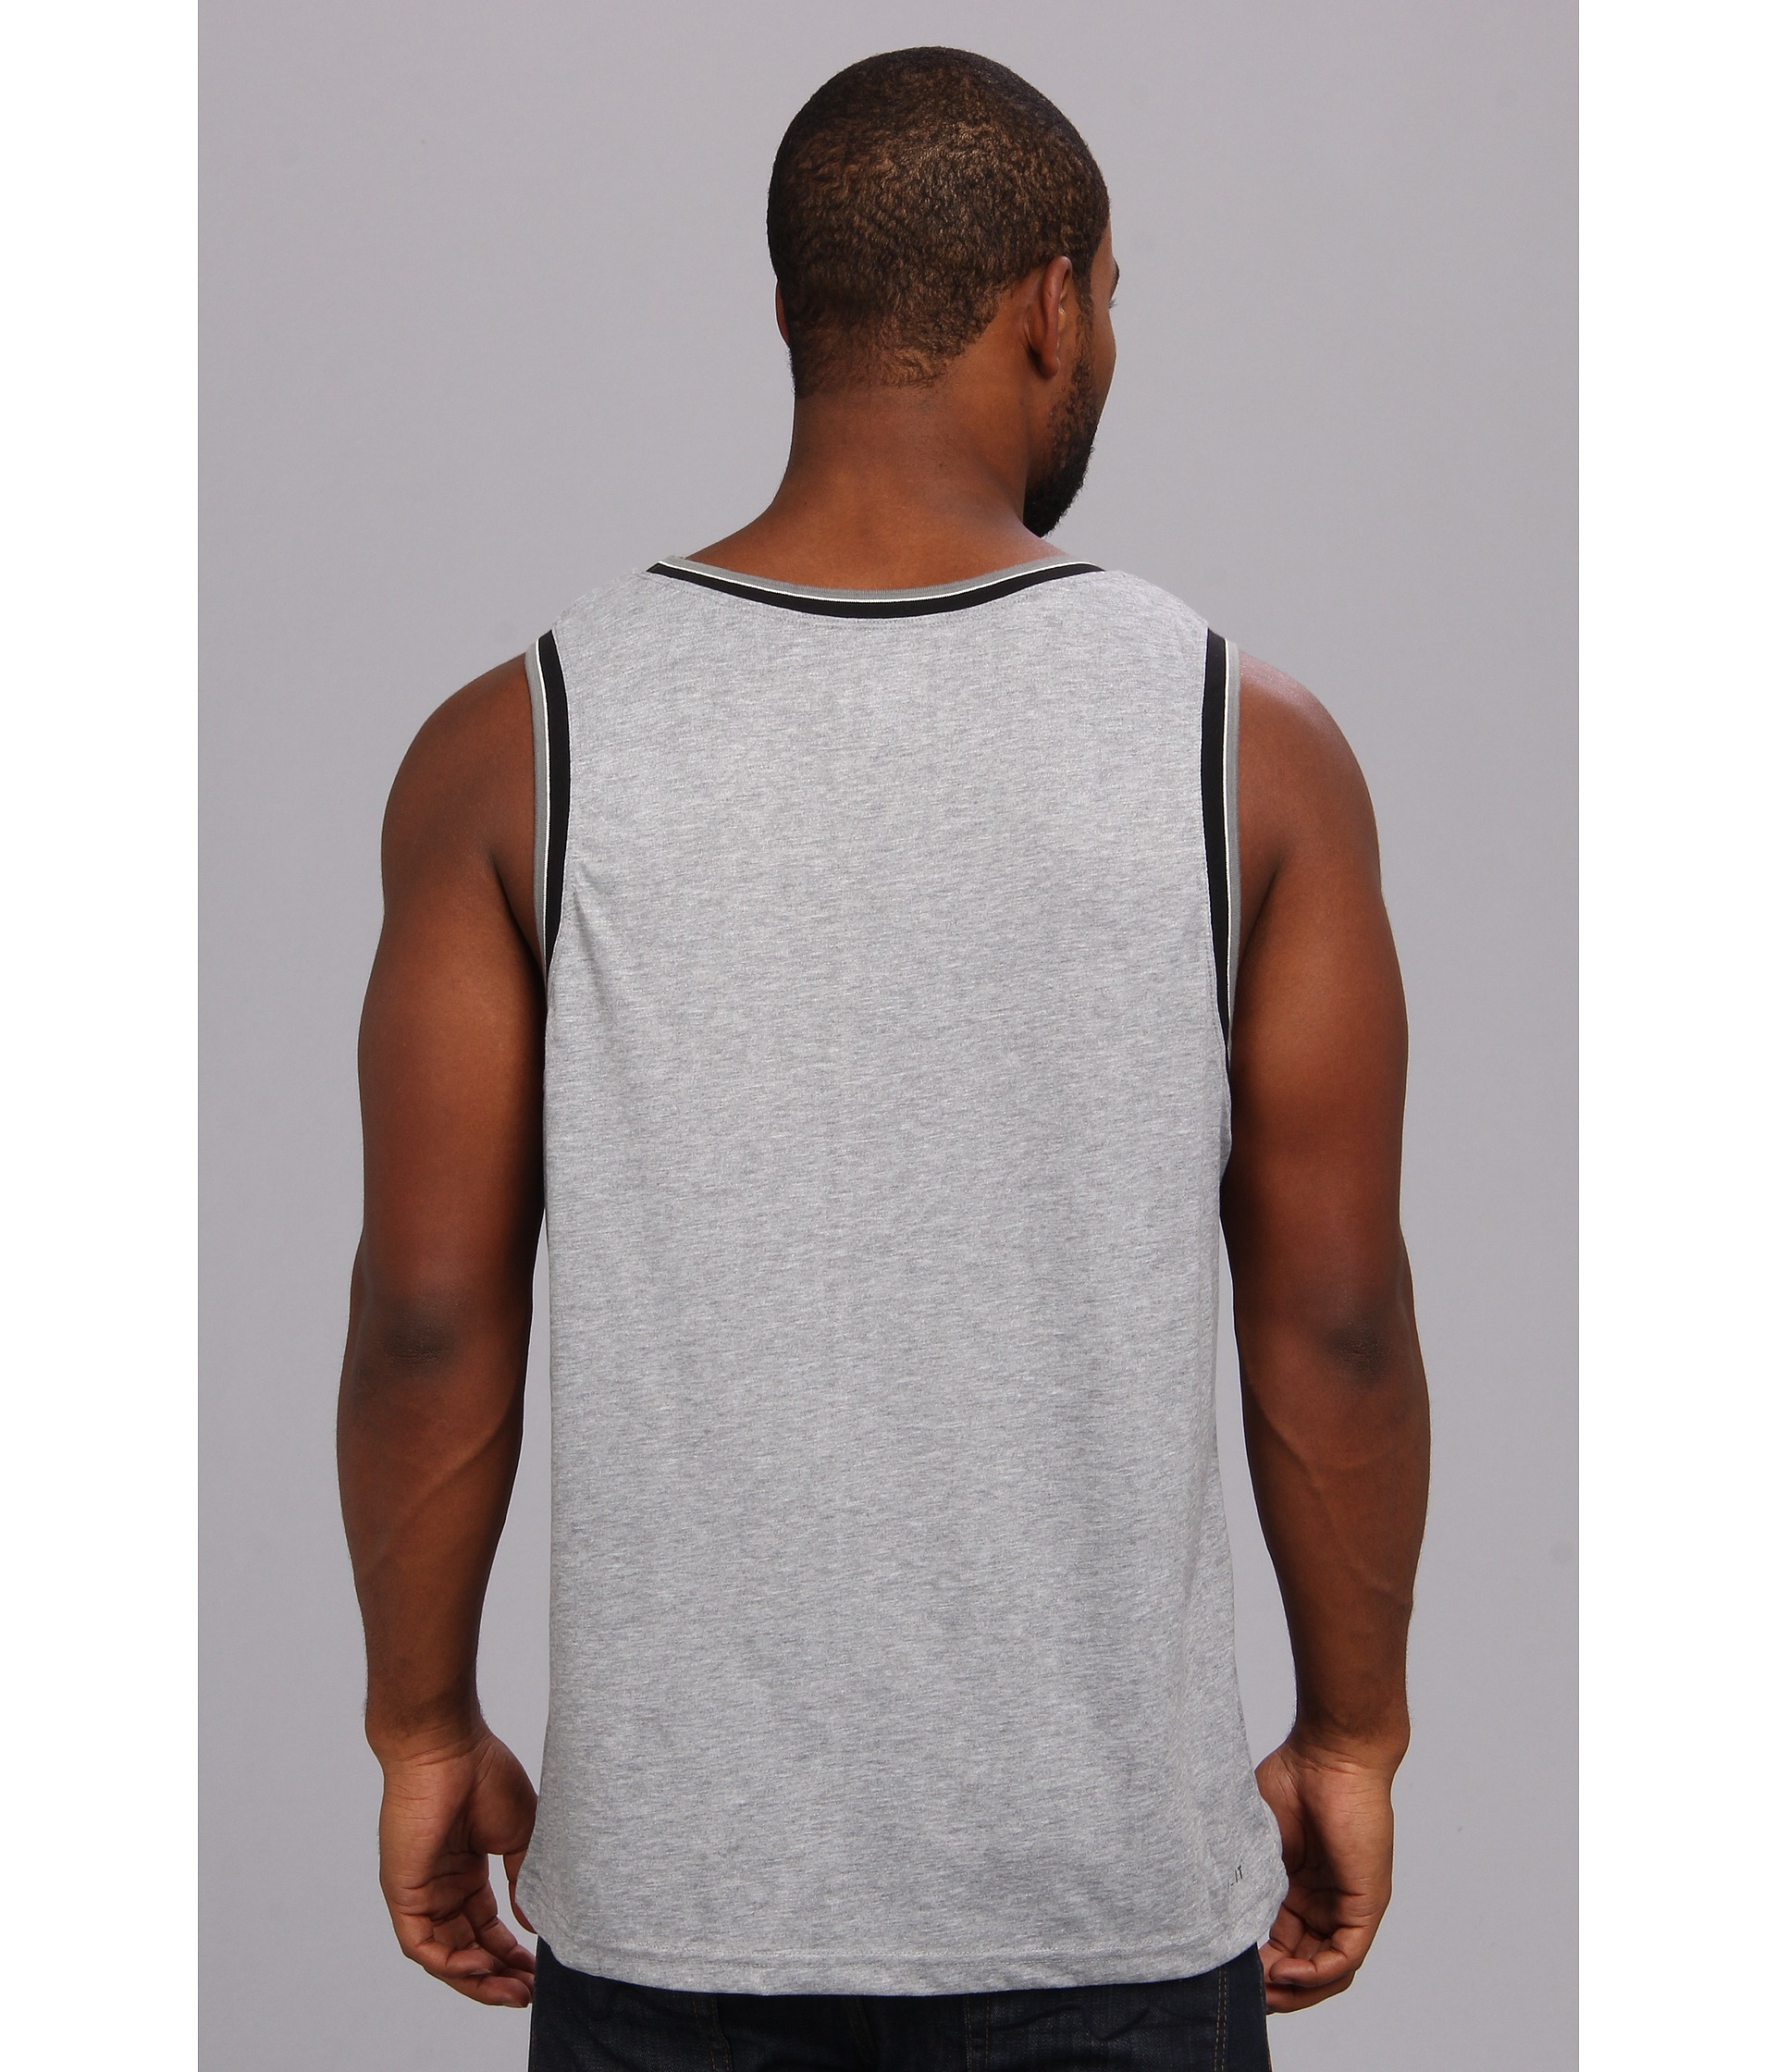 27426d528e0ac Lyst - Nike Sb Drifit Touch Varsity Blocked Tank Top in Gray for Men